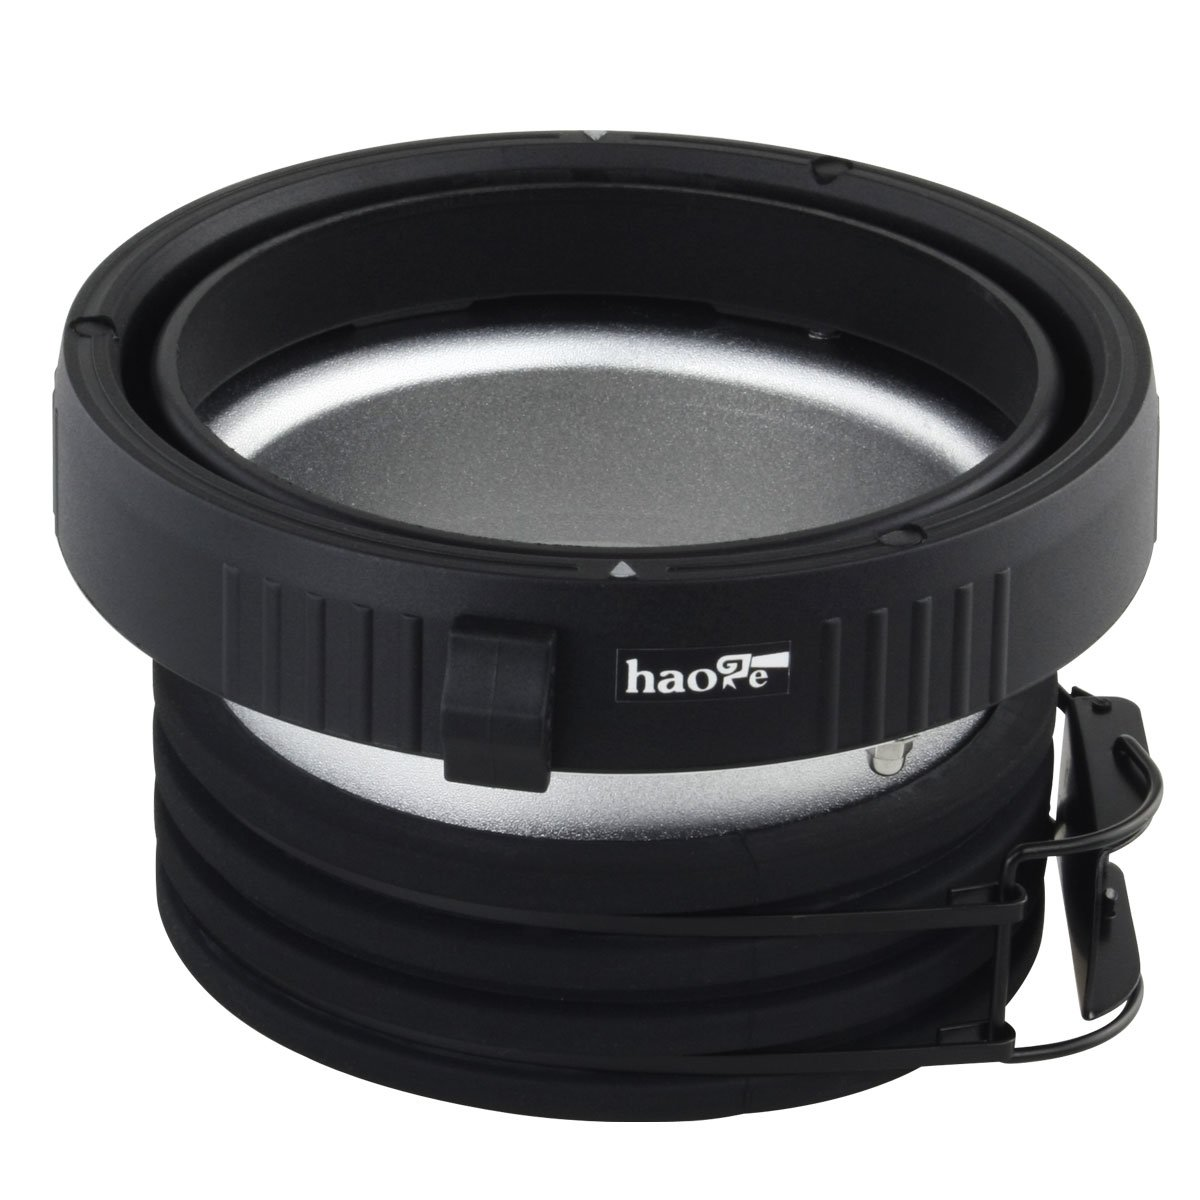 Haoge Profoto to Elinchrom Mount Speedring Ring Adapter Converter for Studio Light Strobe Flash Monolight